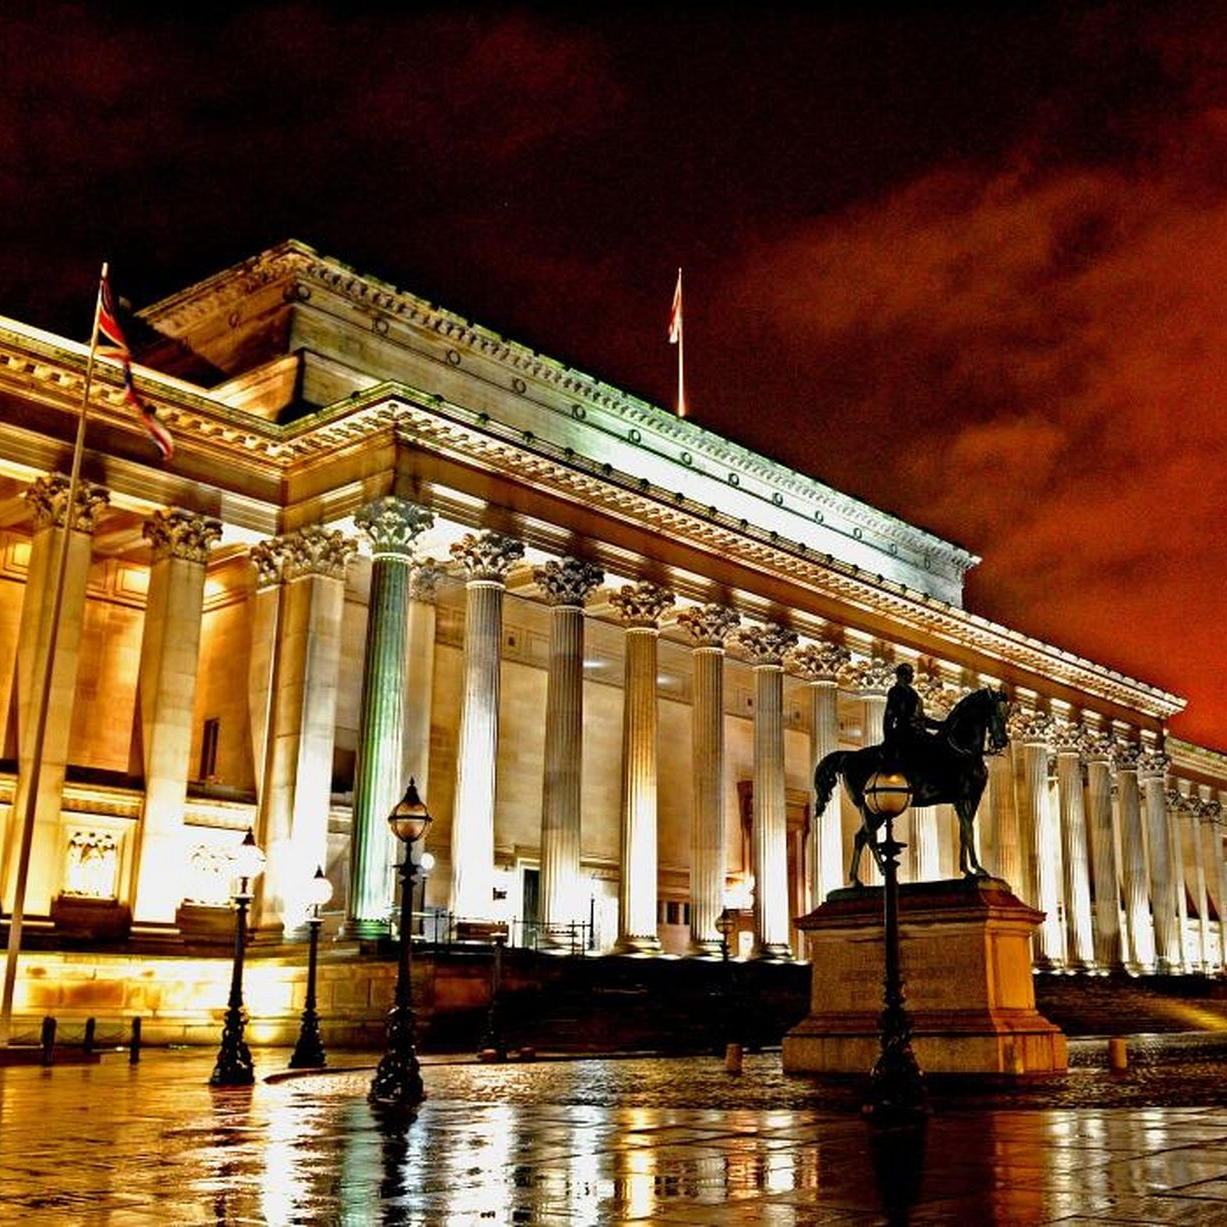 Culture - St George's Hall